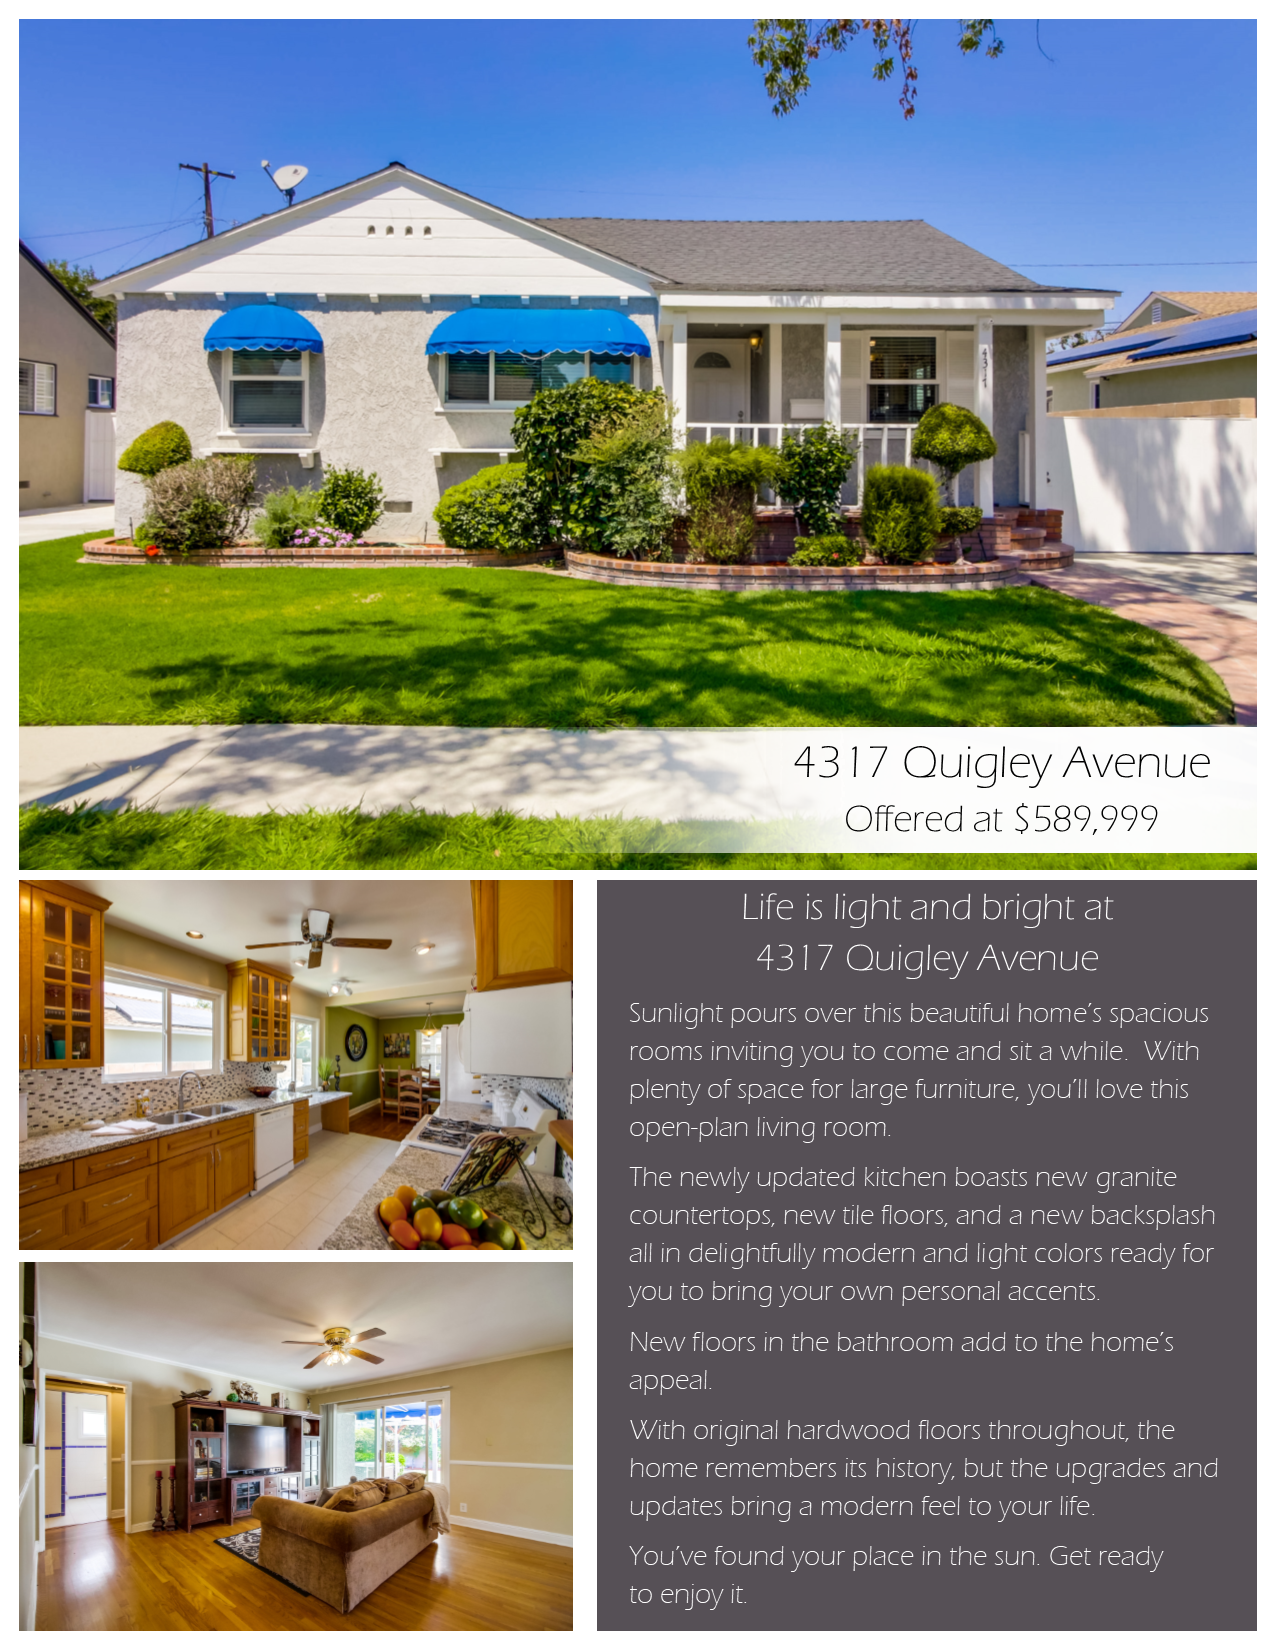 4317 Quigley Avenue for sale in Lakewood, California.